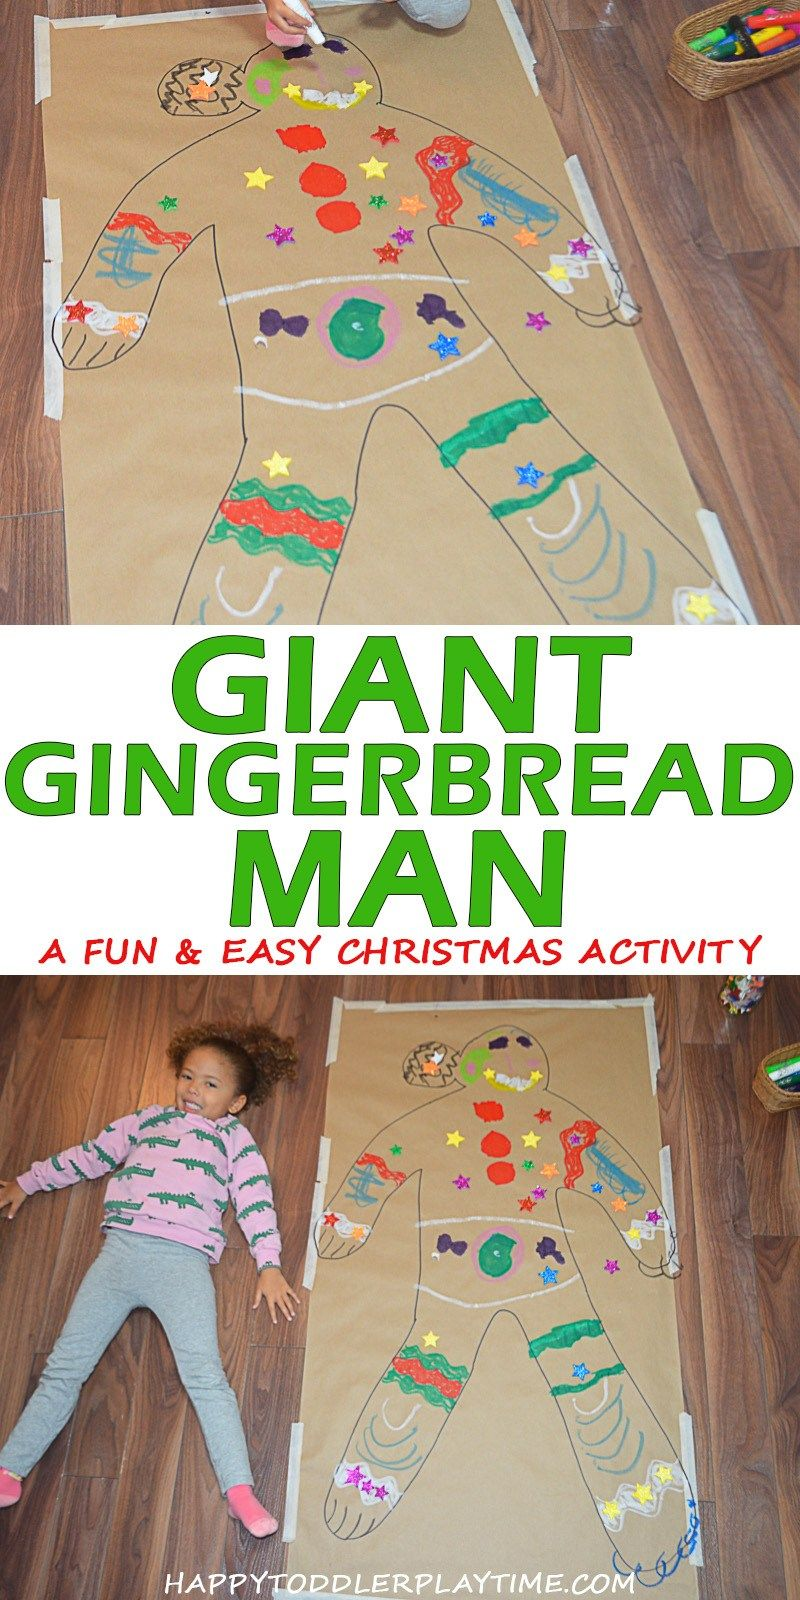 Photo of Giant Gingerbread Man Craft – HAPPY TODDLER PLAYTIME